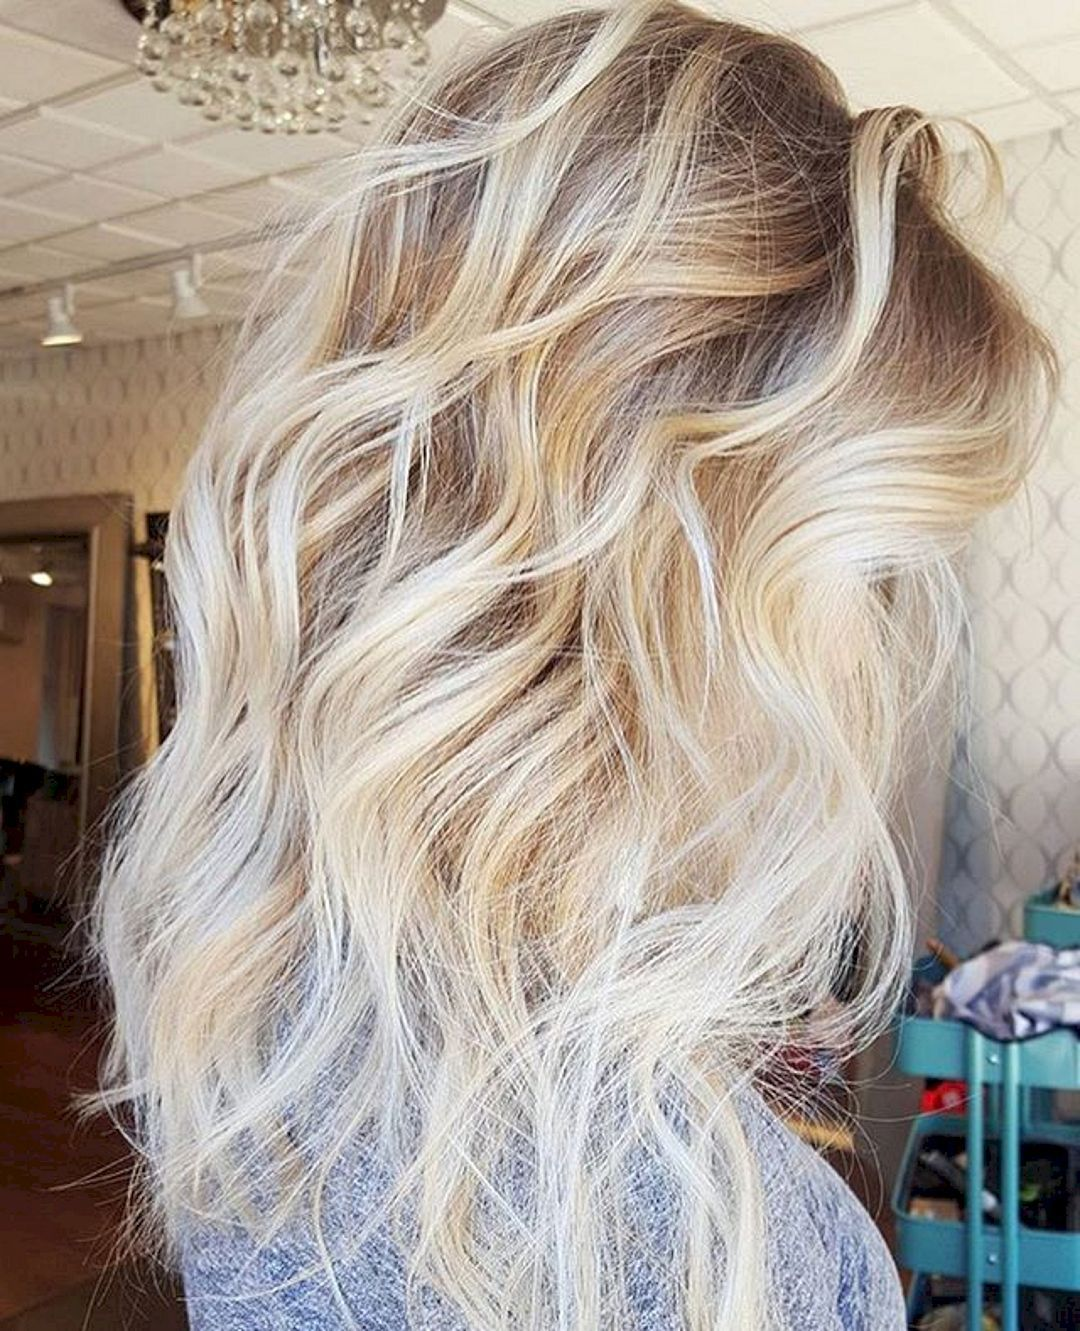 230+ stunning blonde hair color ideas you have got to see and try